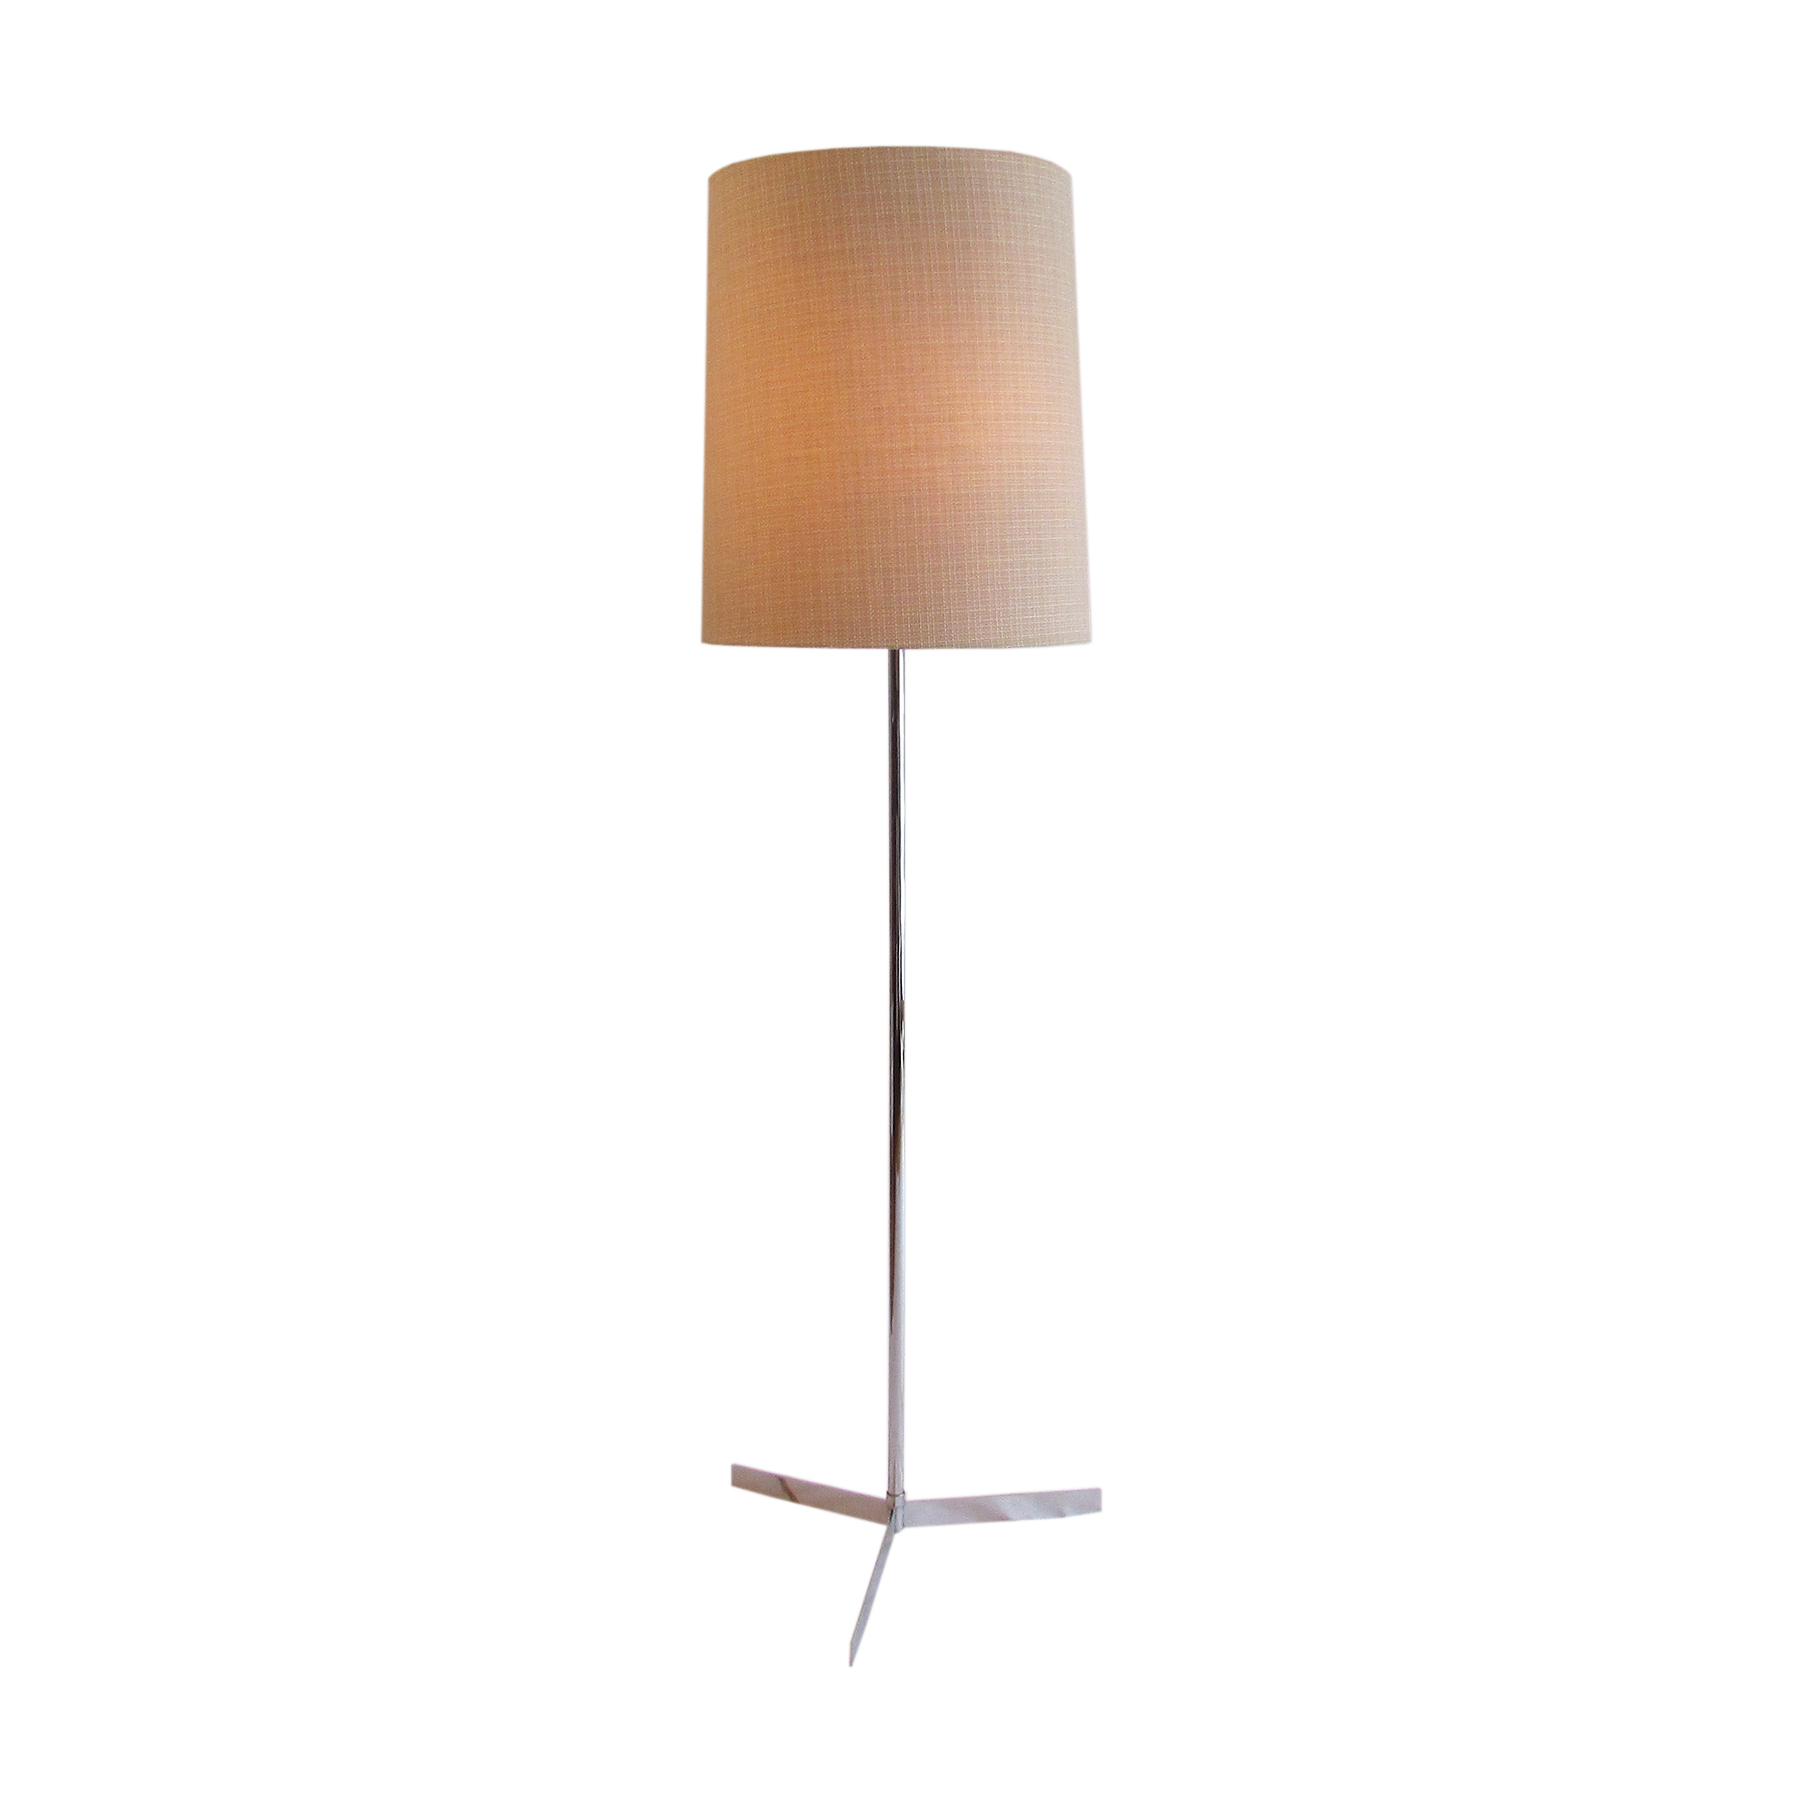 Minimalist Floor Lamp Lighting Artichoke Vintage Furniture